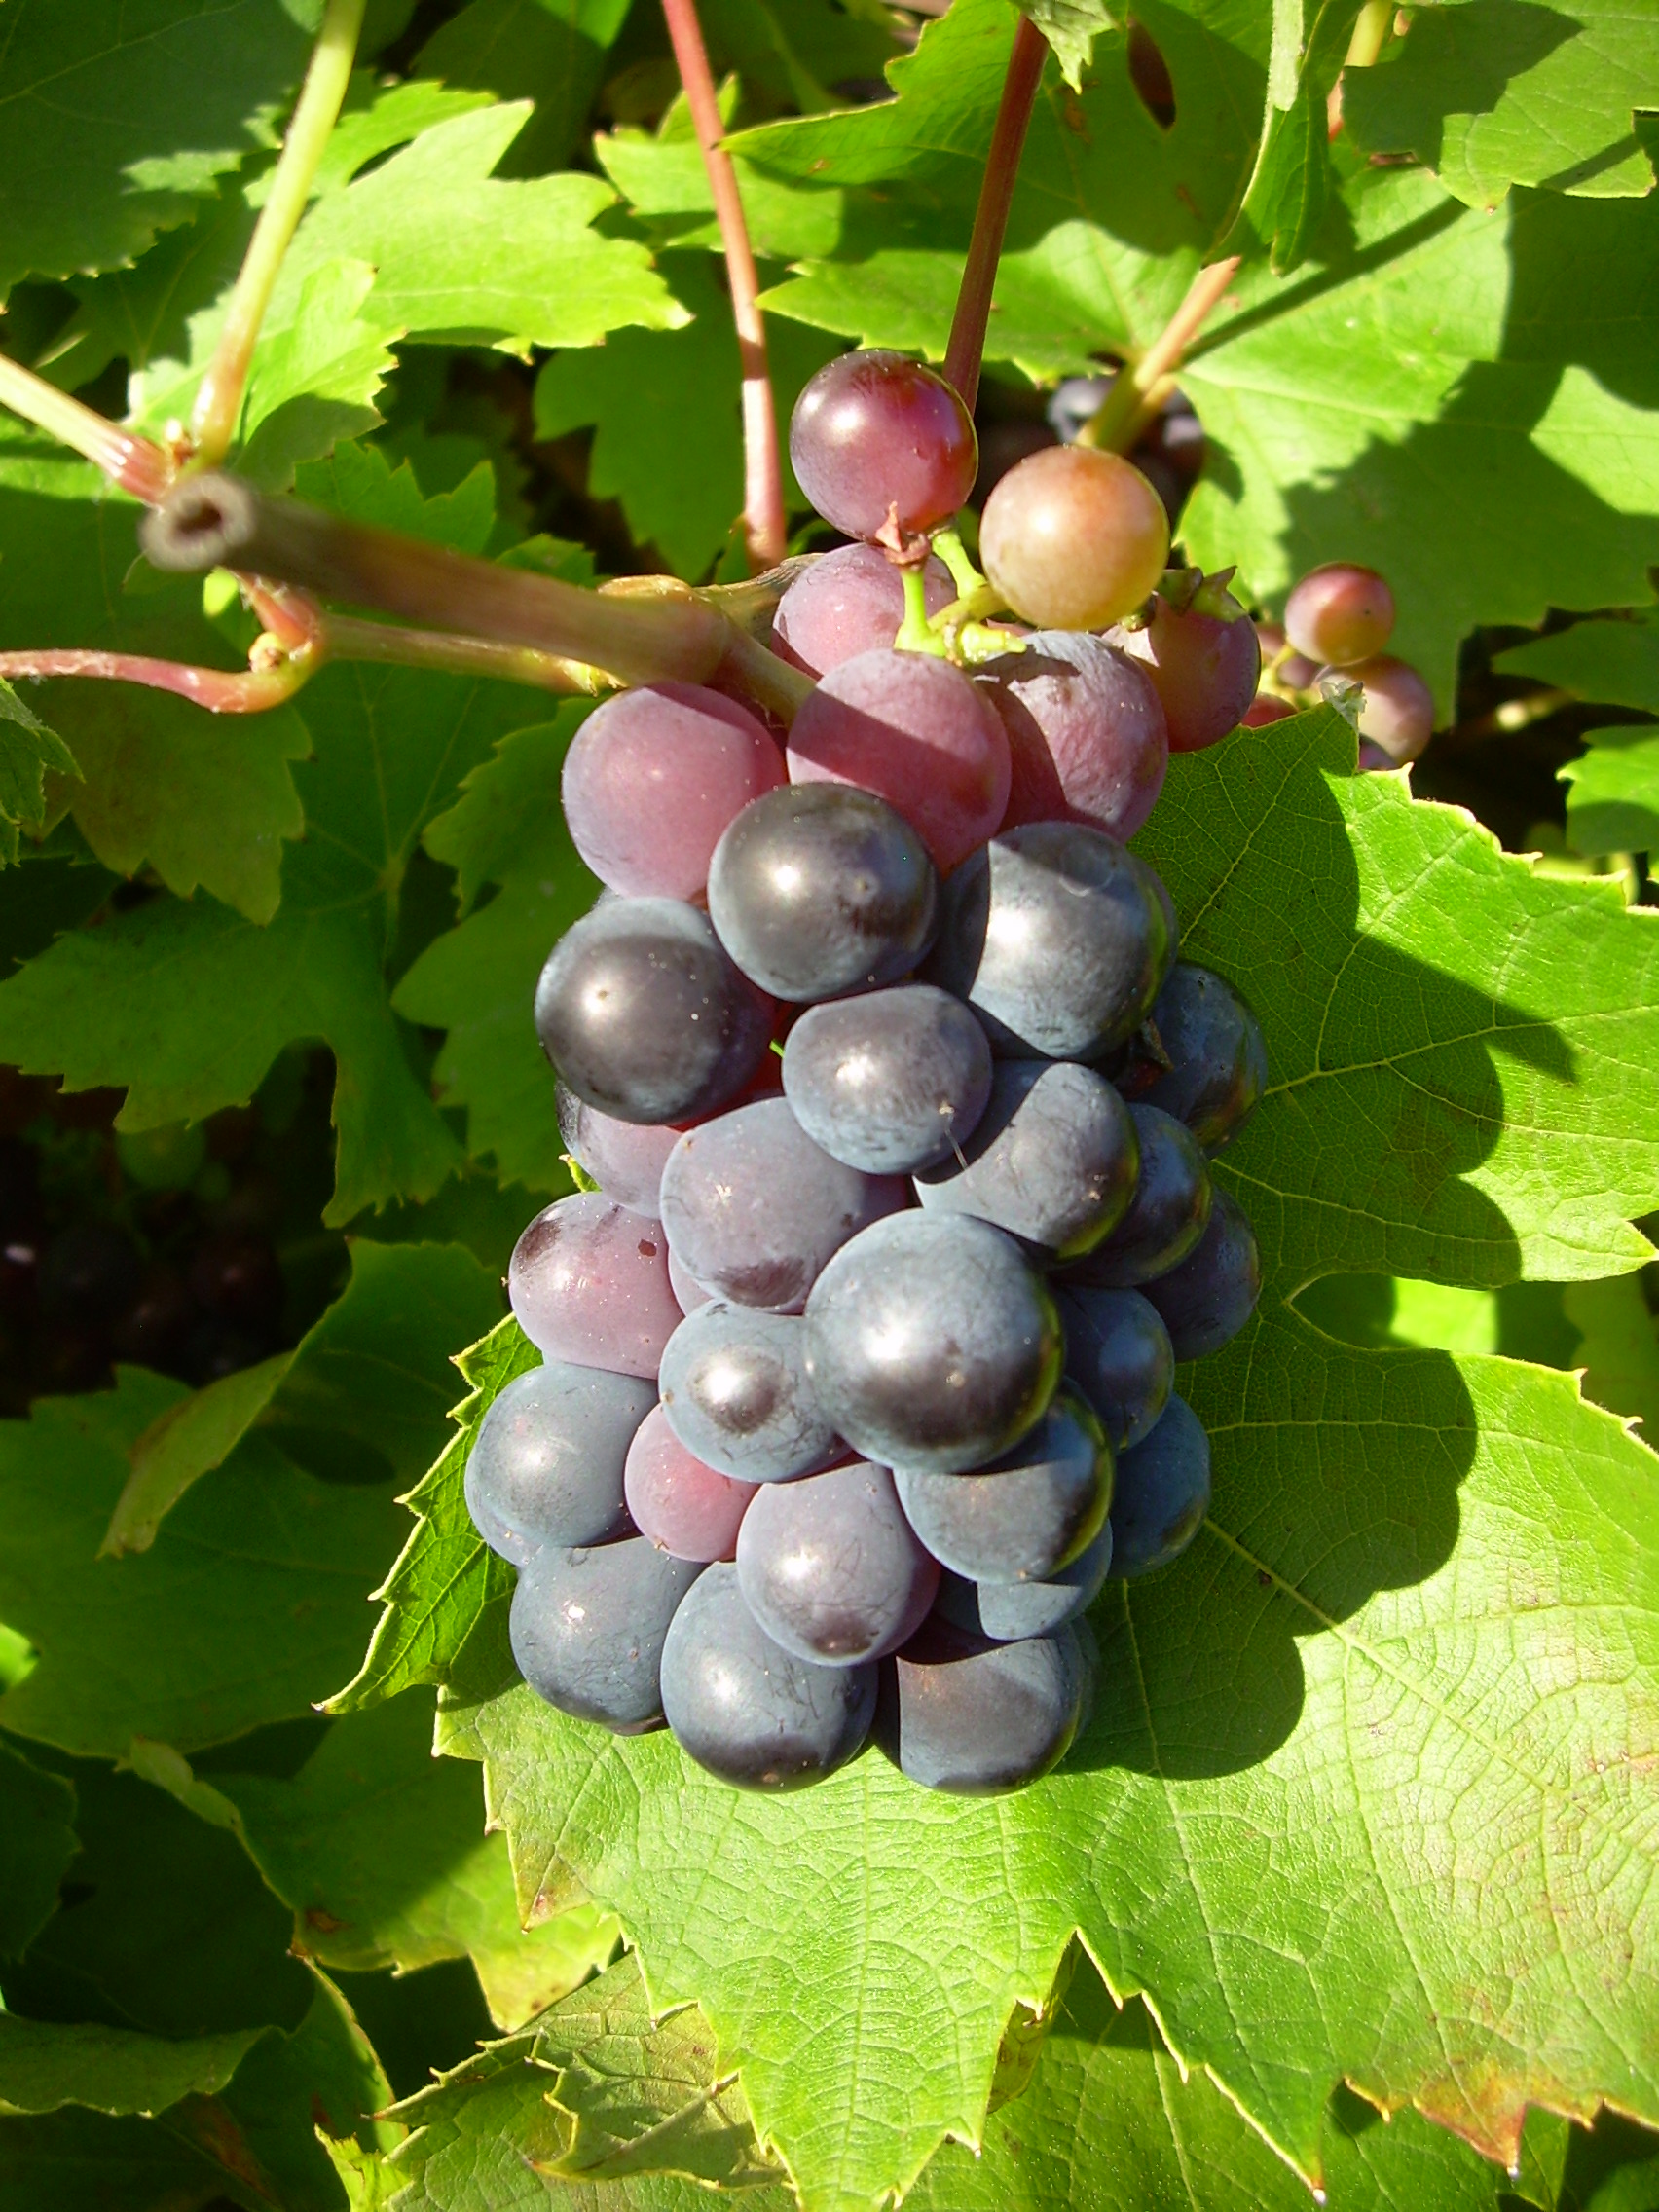 Photo of bunch of ripe grapes.